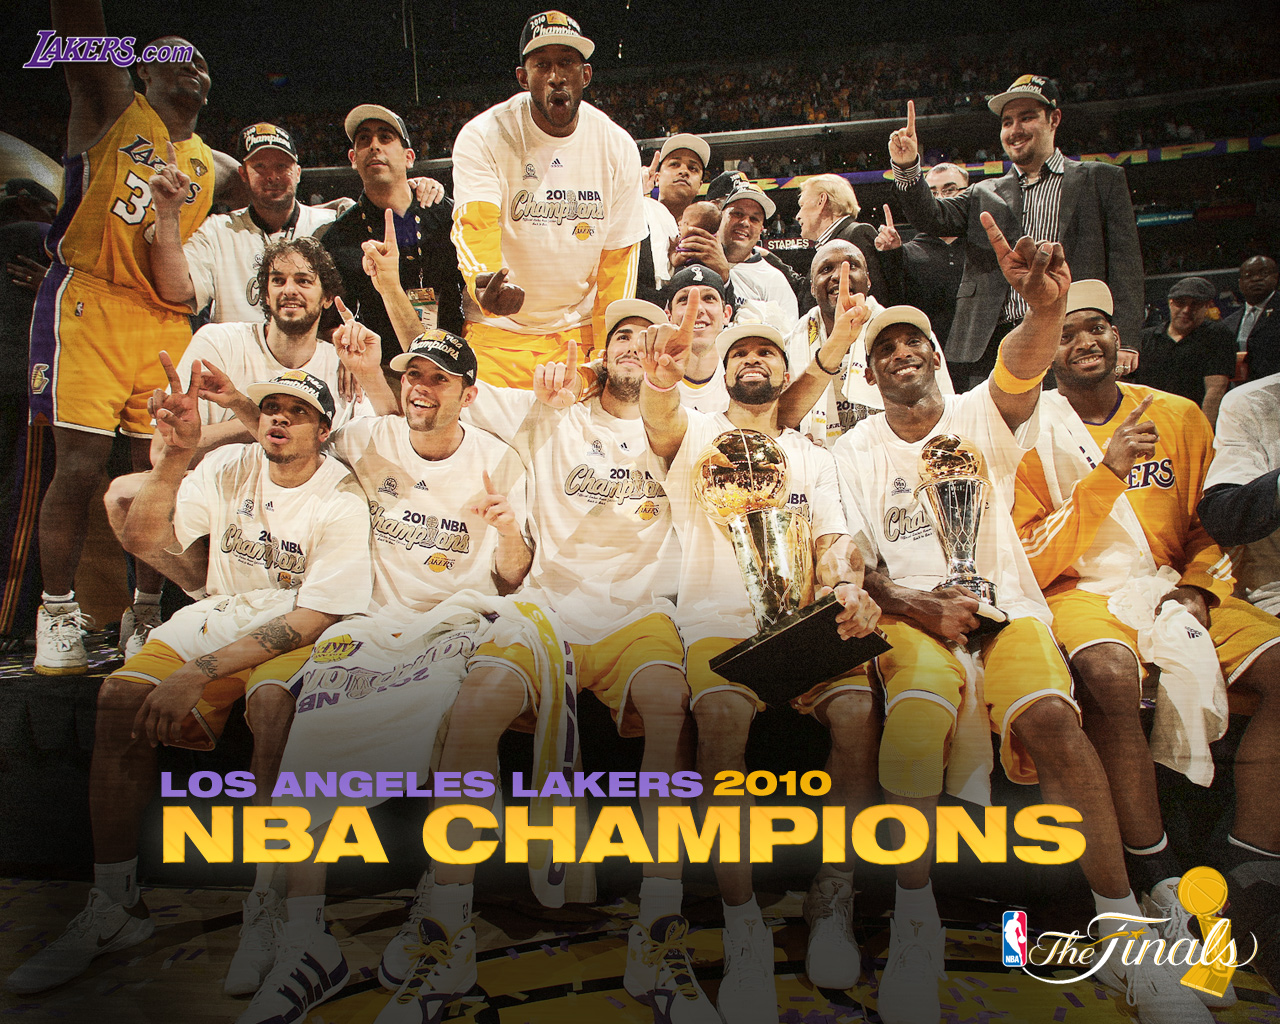 images of motivational wallpaper on winners los angeles lakers nba 2010 wallpaper